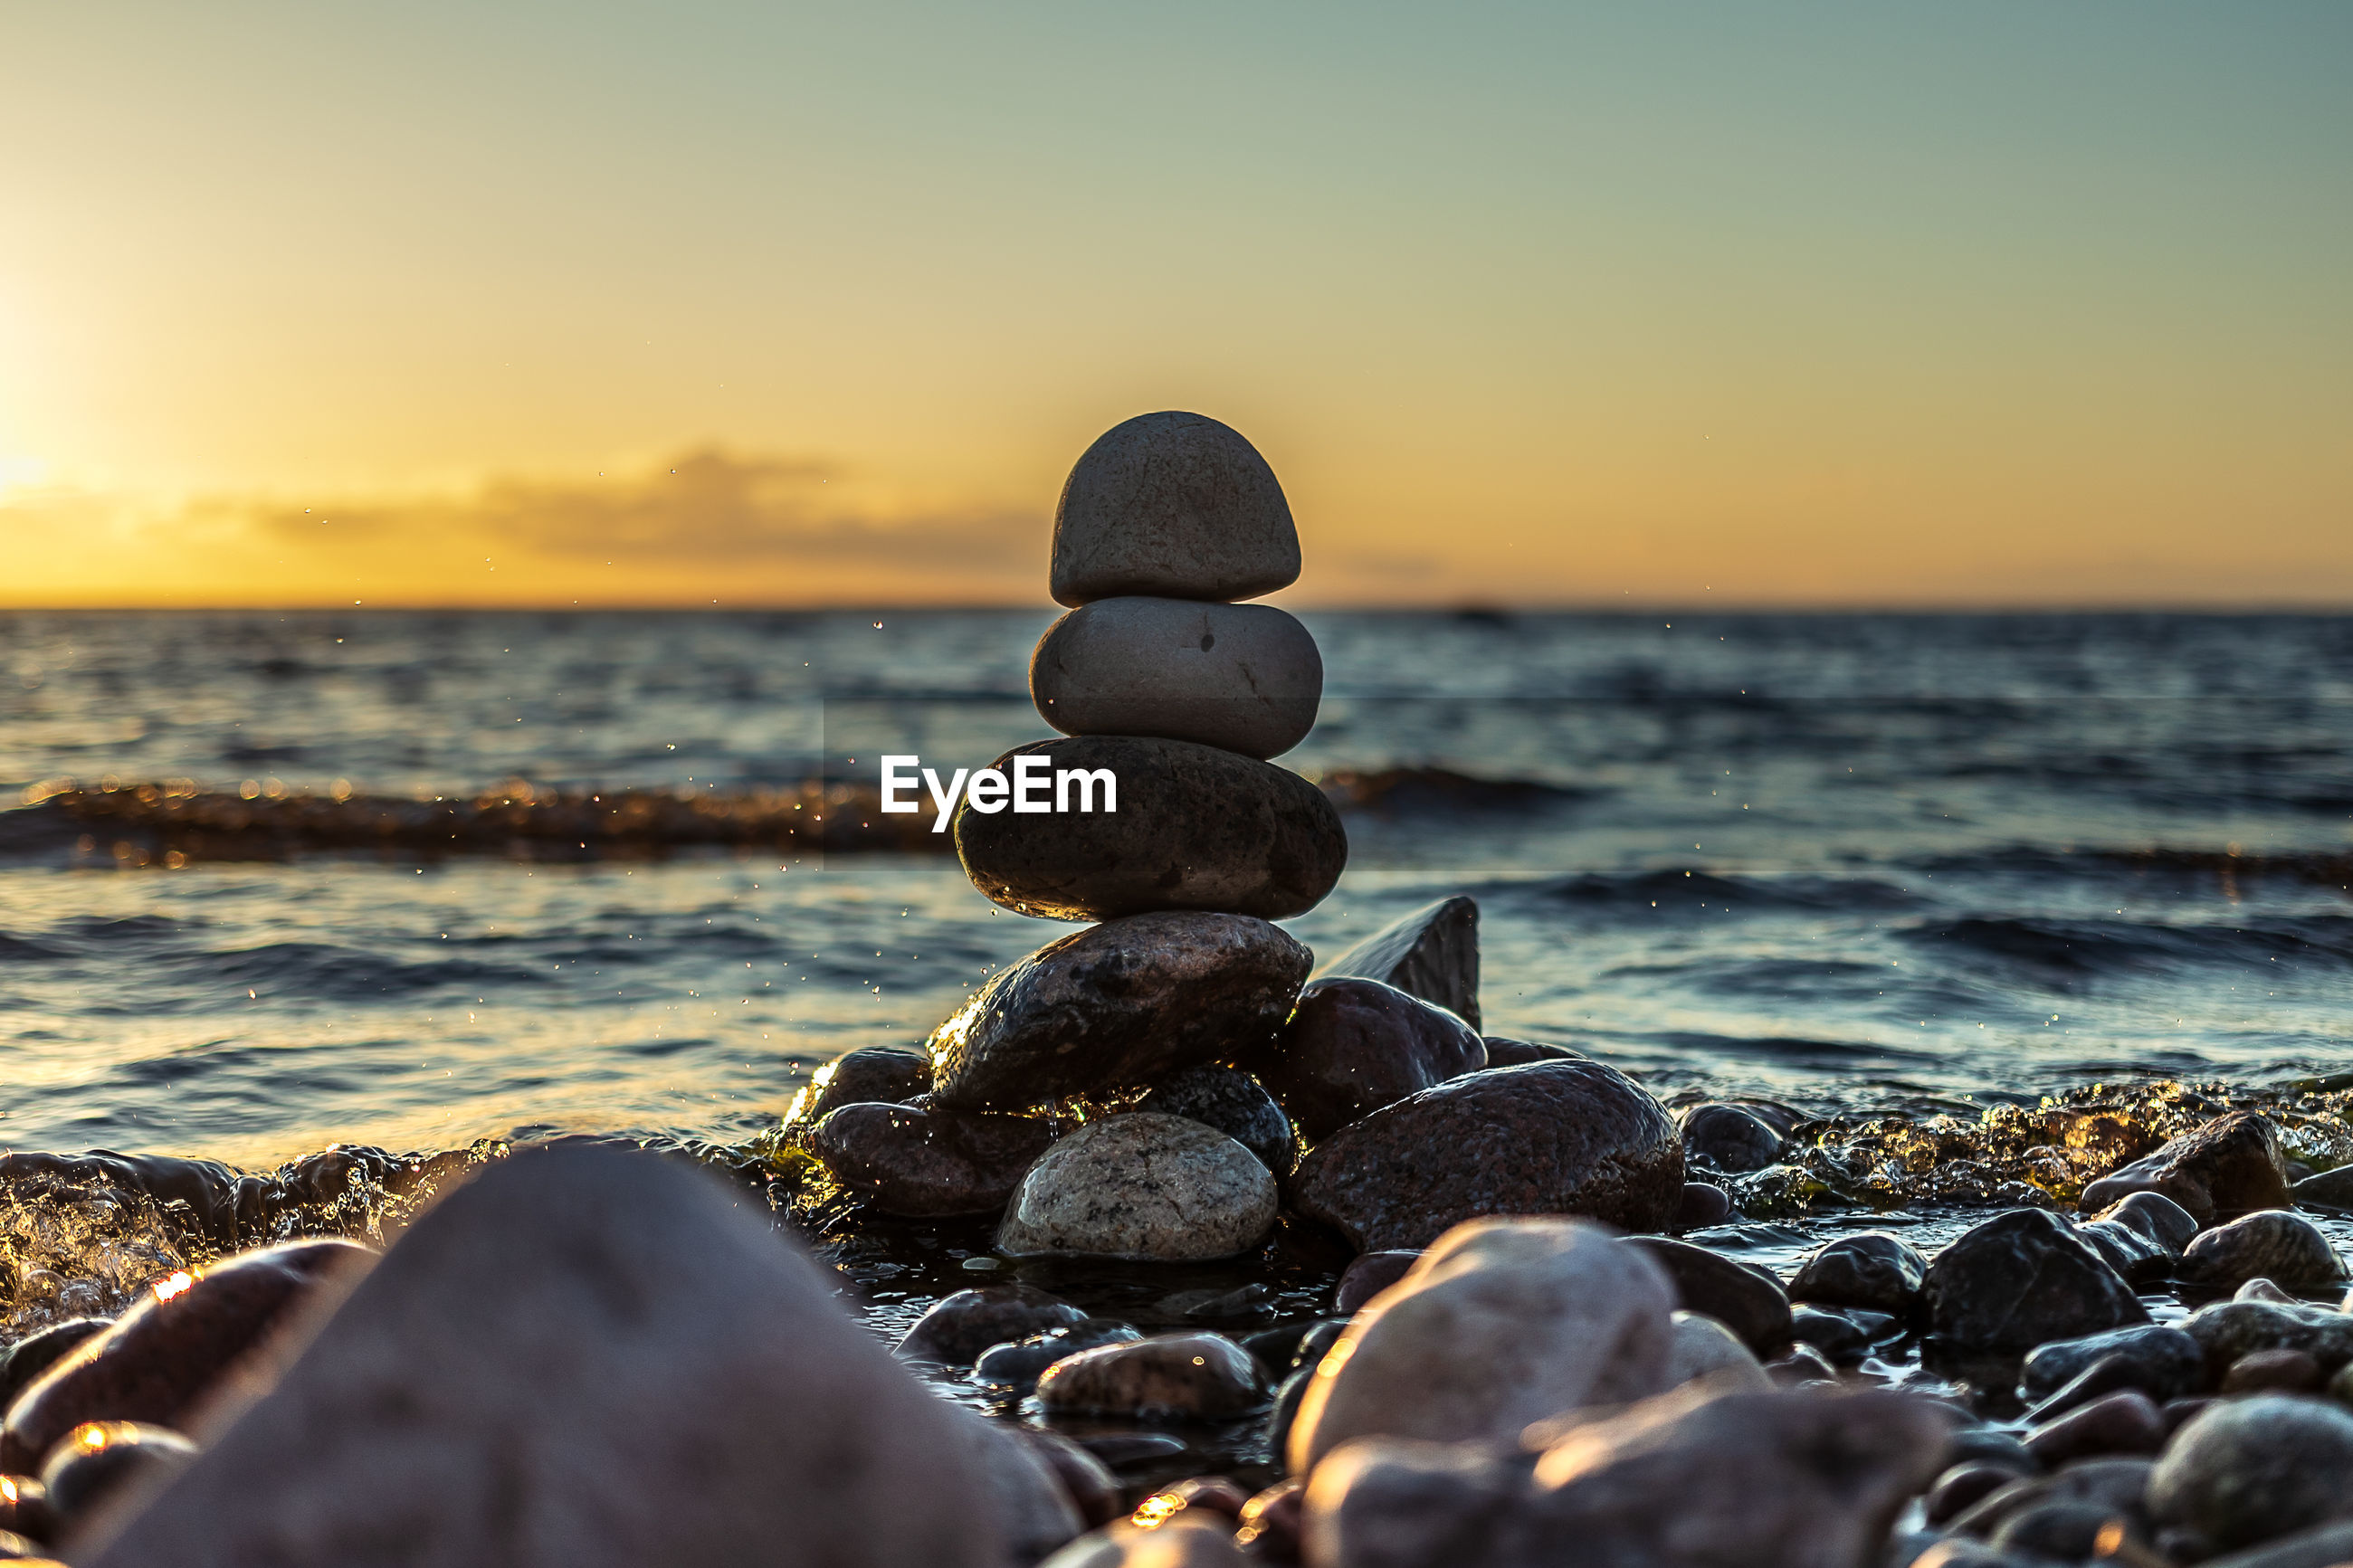 Sunset on a pebble beach where a stack of round stones stands on each other.